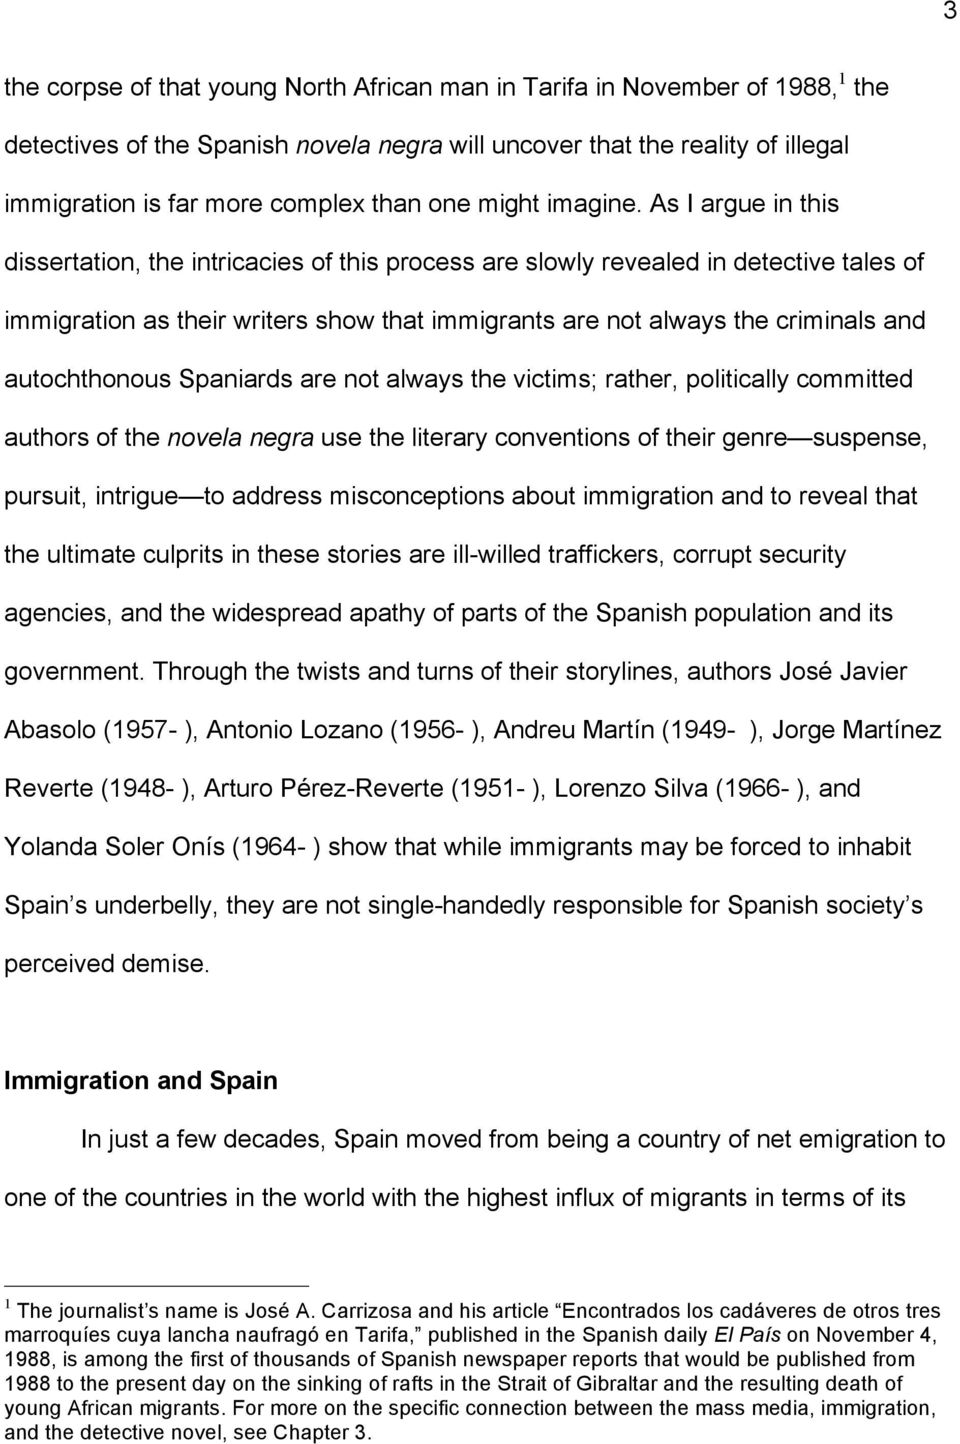 As I argue in this dissertation, the intricacies of this process are slowly revealed in detective tales of immigration as their writers show that immigrants are not always the criminals and